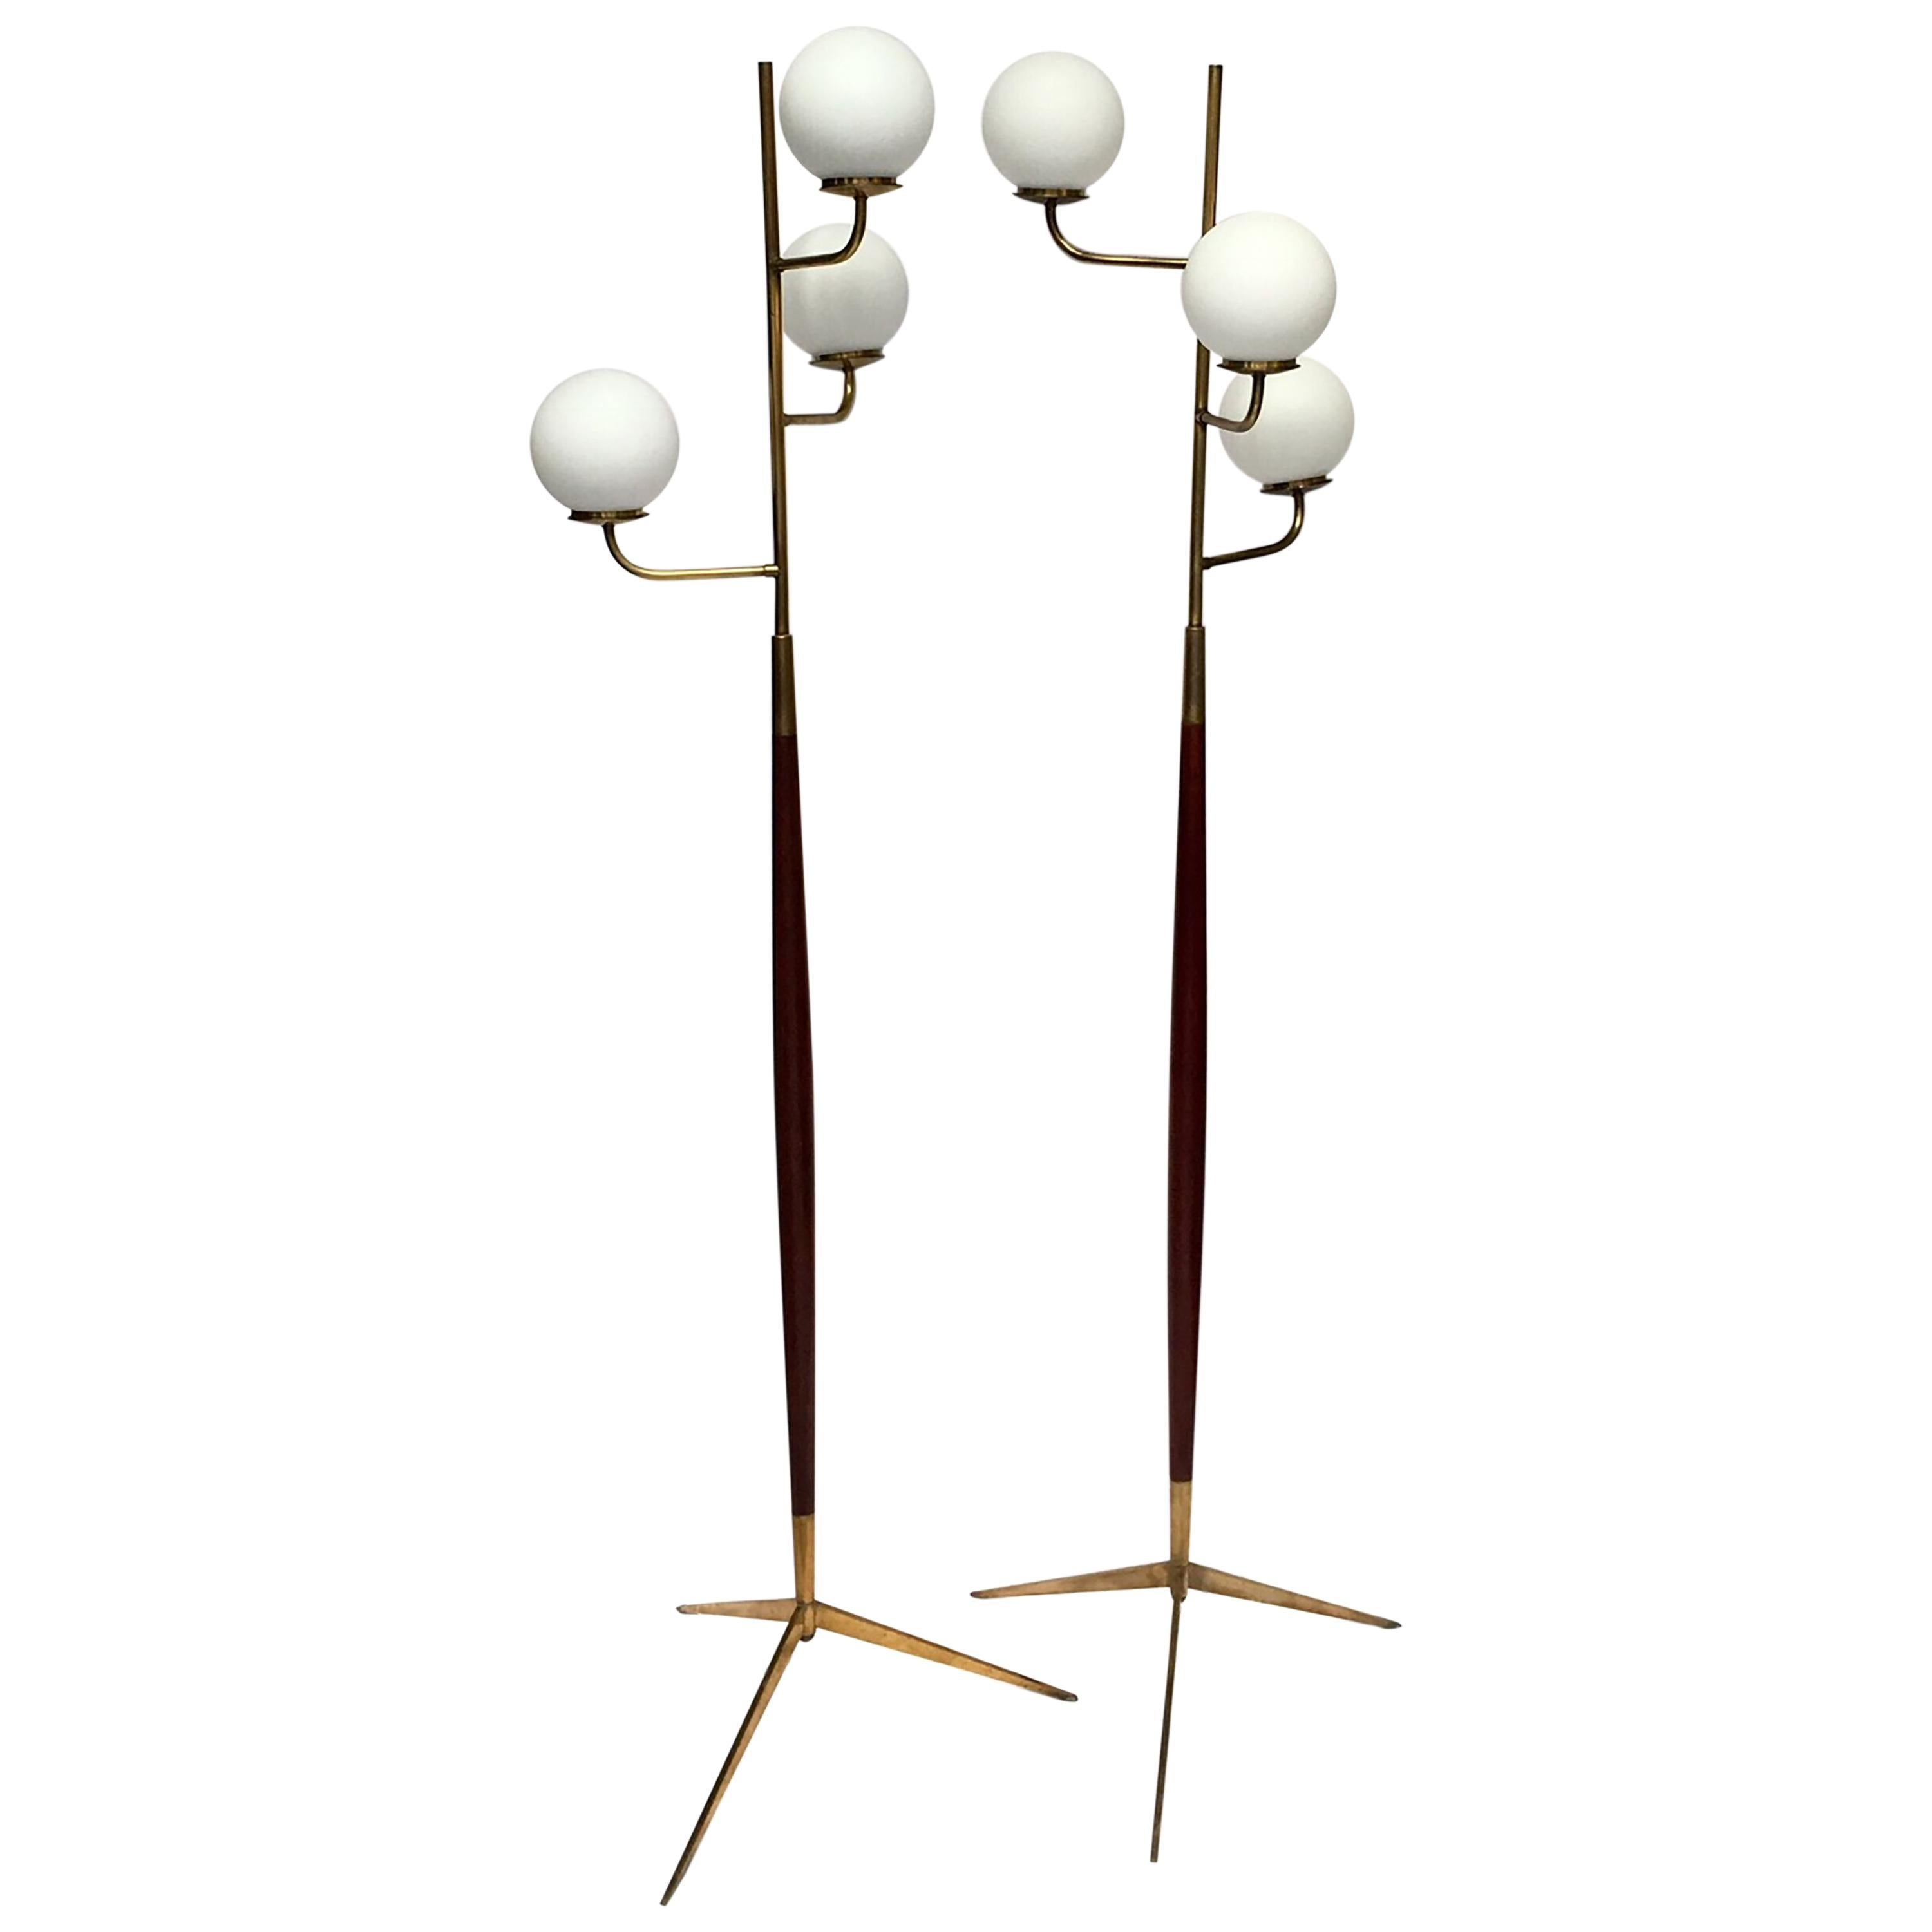 Pair of Mid-Centyry Triple Lighting Floor Lamps by Maison Lunel